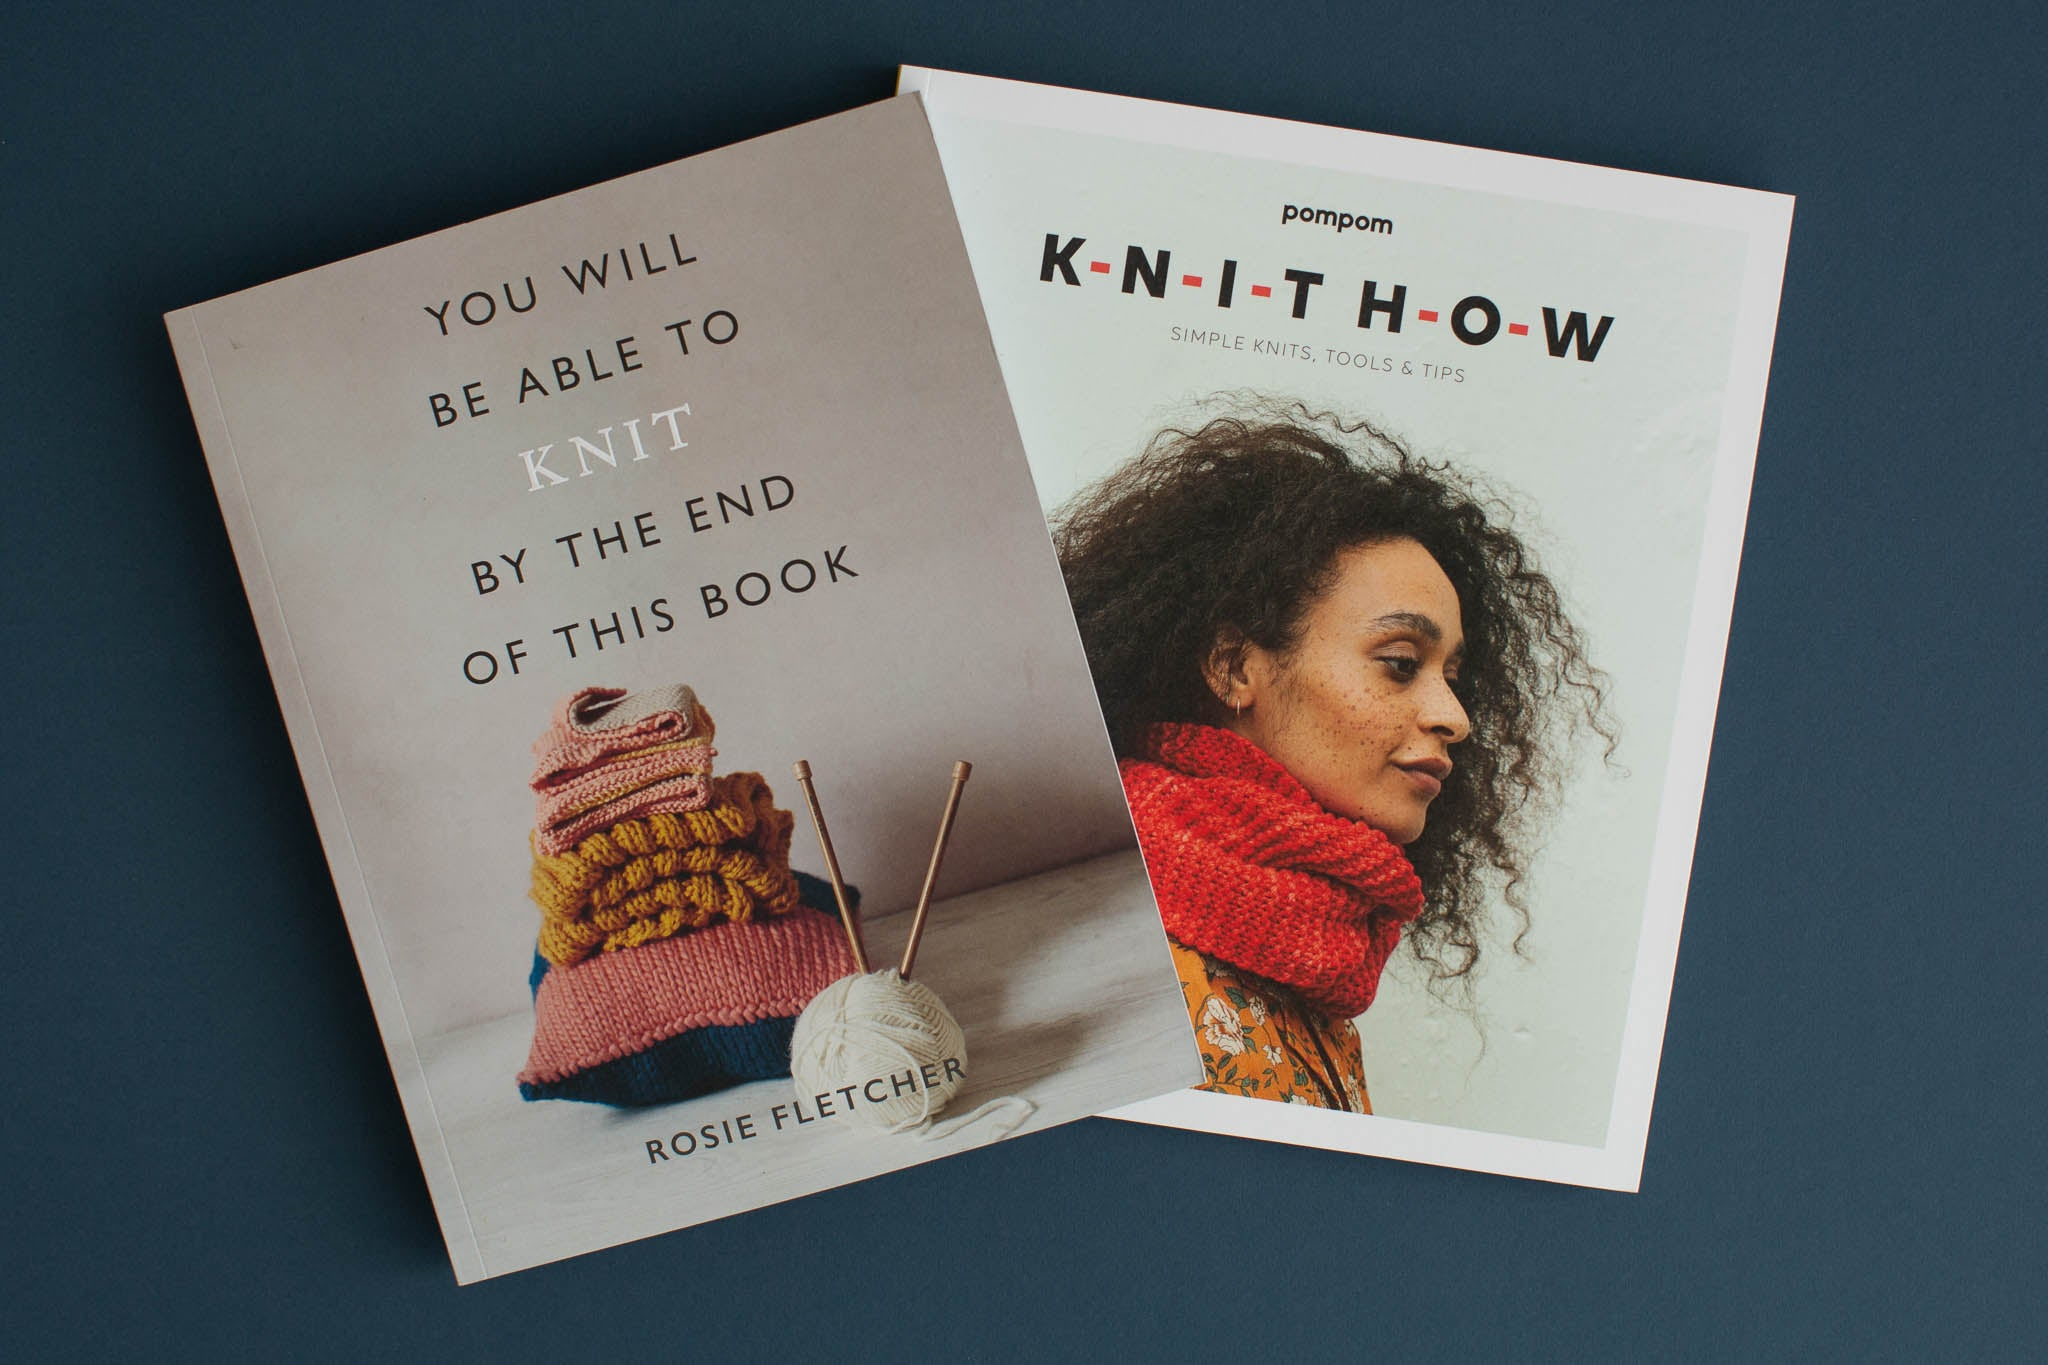 Two books laying flat, slightly overlapping. One shows a pile of knitting and is called 'You Will Be Able To Knit By The End Of This Book' and the other shows a young black woman wearing a red cowl called 'Knit How.'